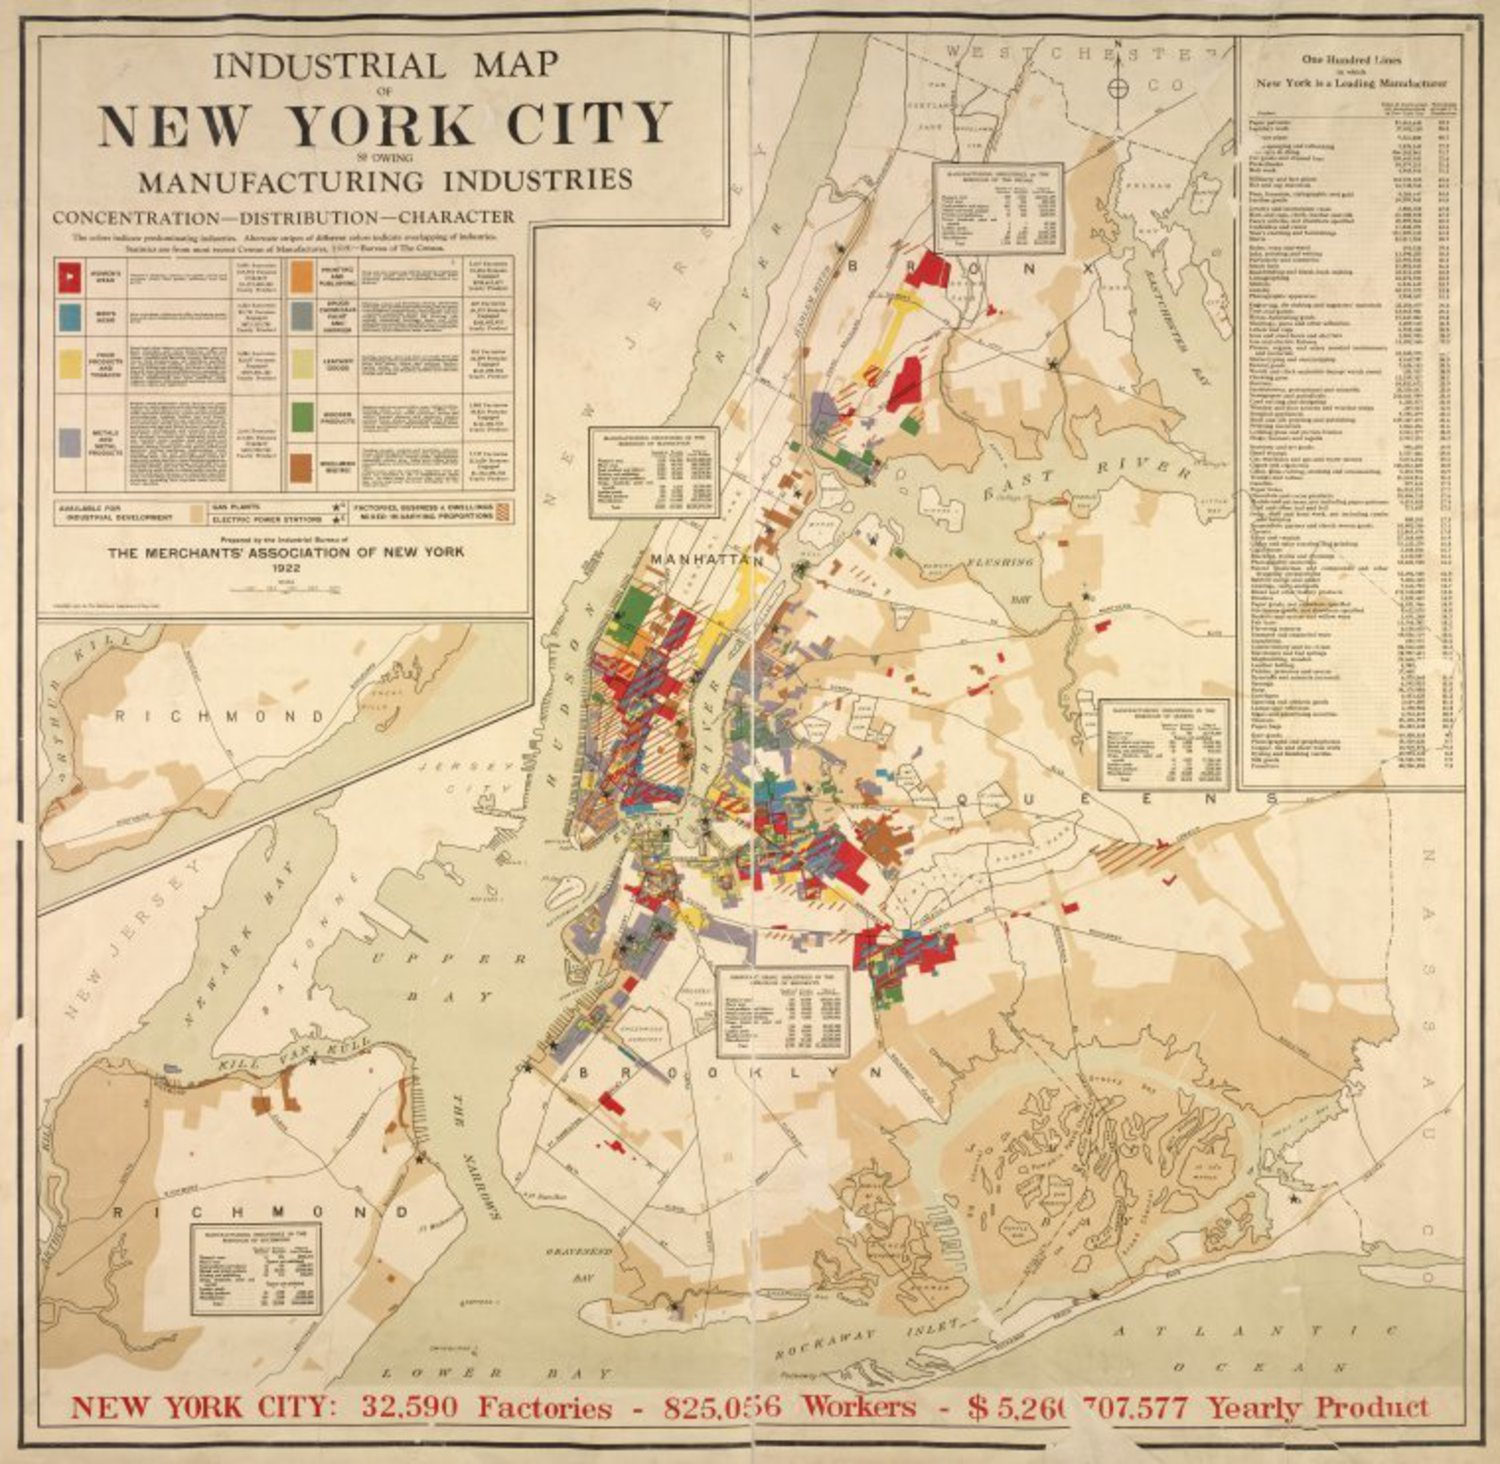 Industrial map of New York City: showing manufacturing industries, concentration, distribution, character